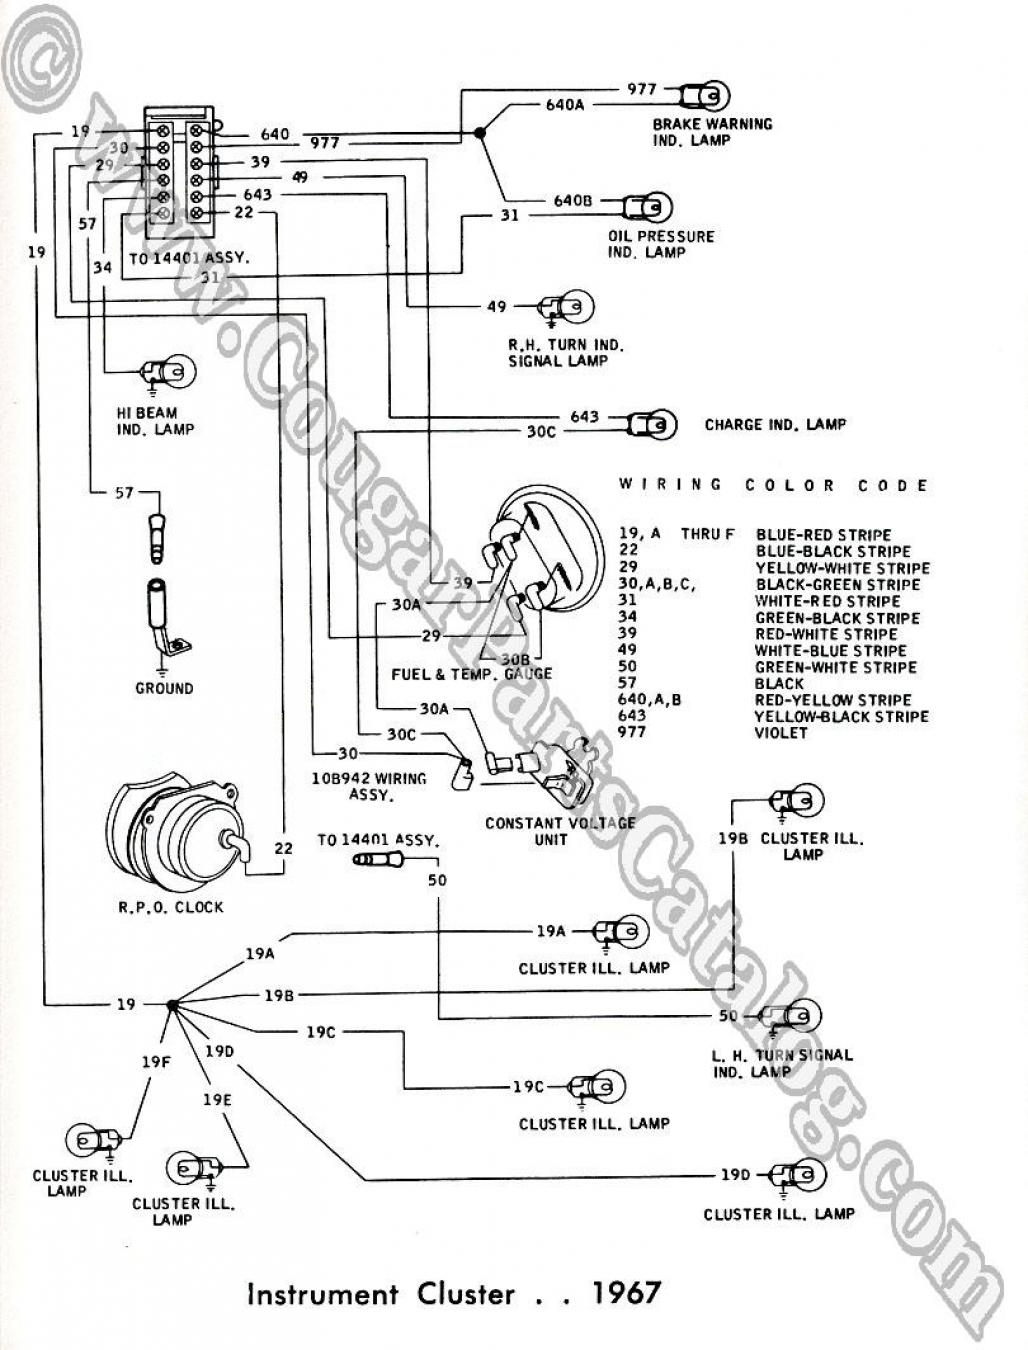 1969 Car Wiring Diagram 1968 Mercury Cougar Diagram